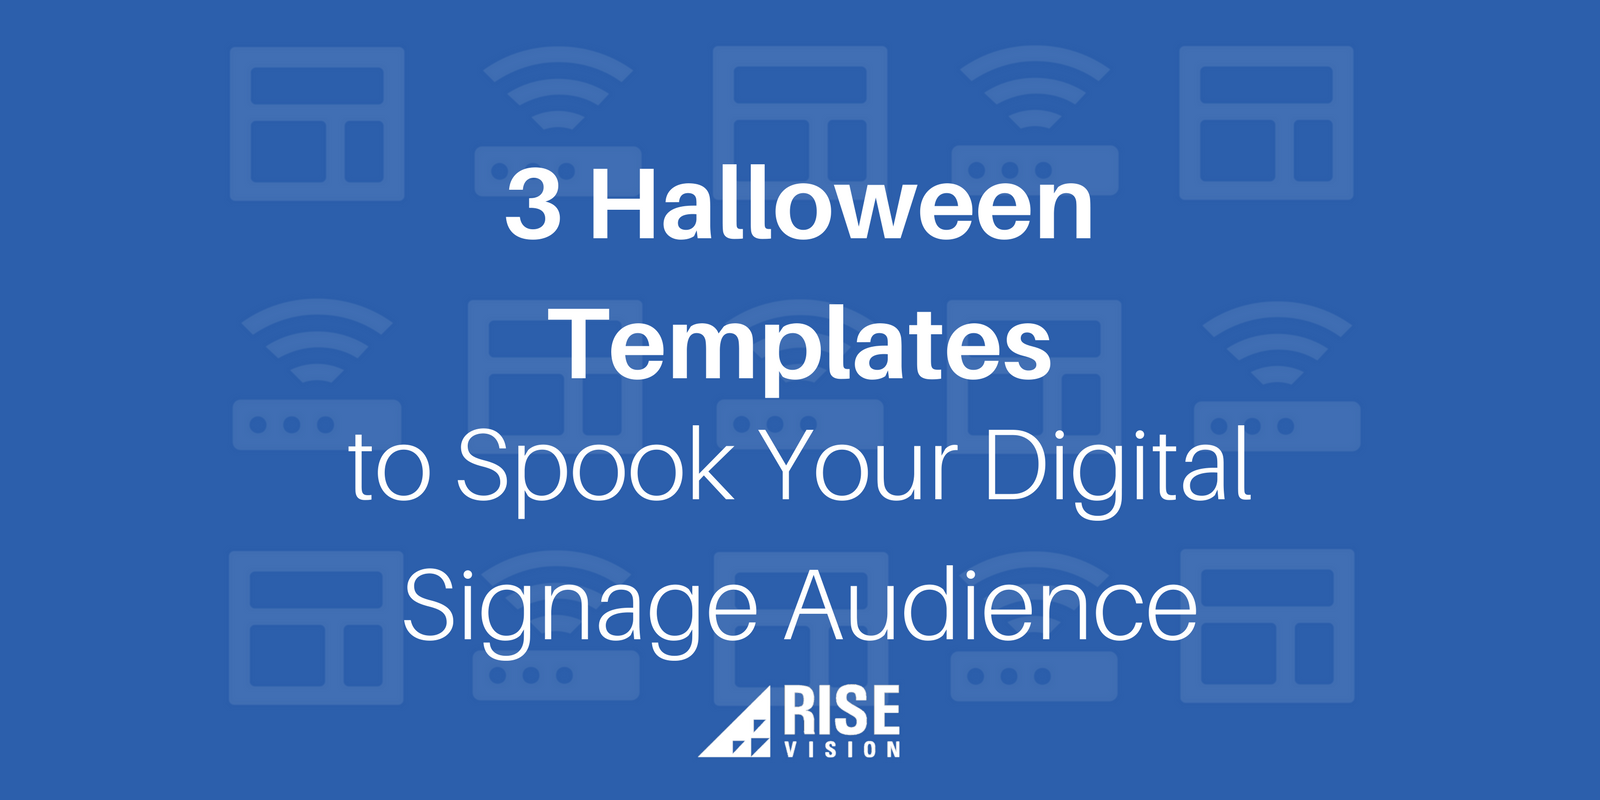 3 Halloween Templates to Spook Your Digital Signage Audience.png